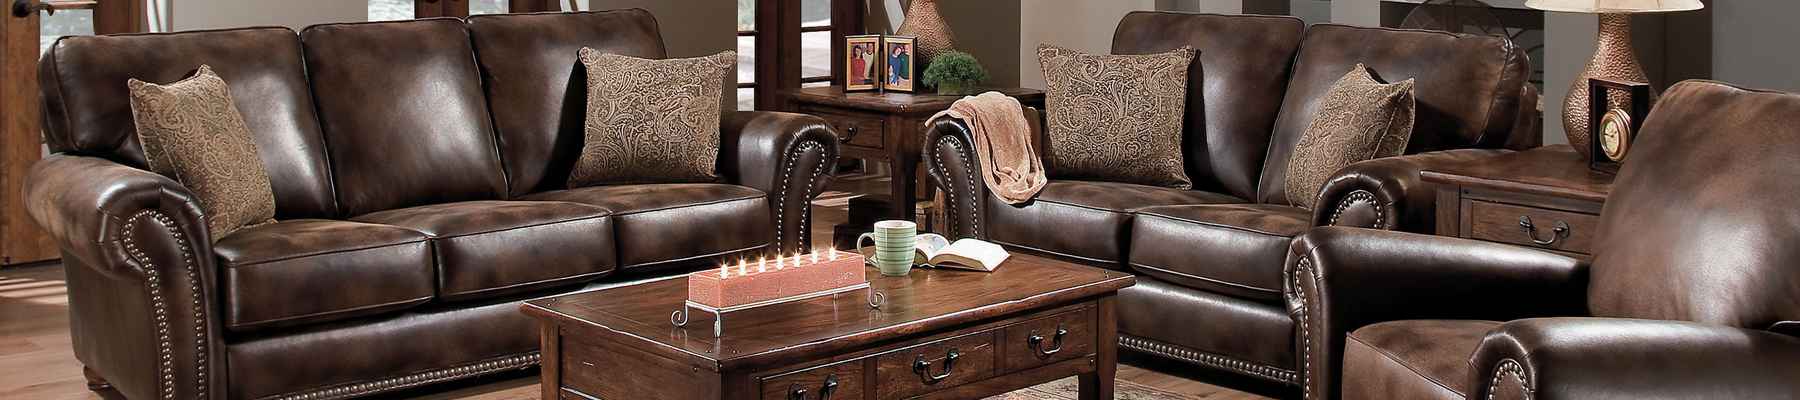 Lane Home Furnishings Furniture